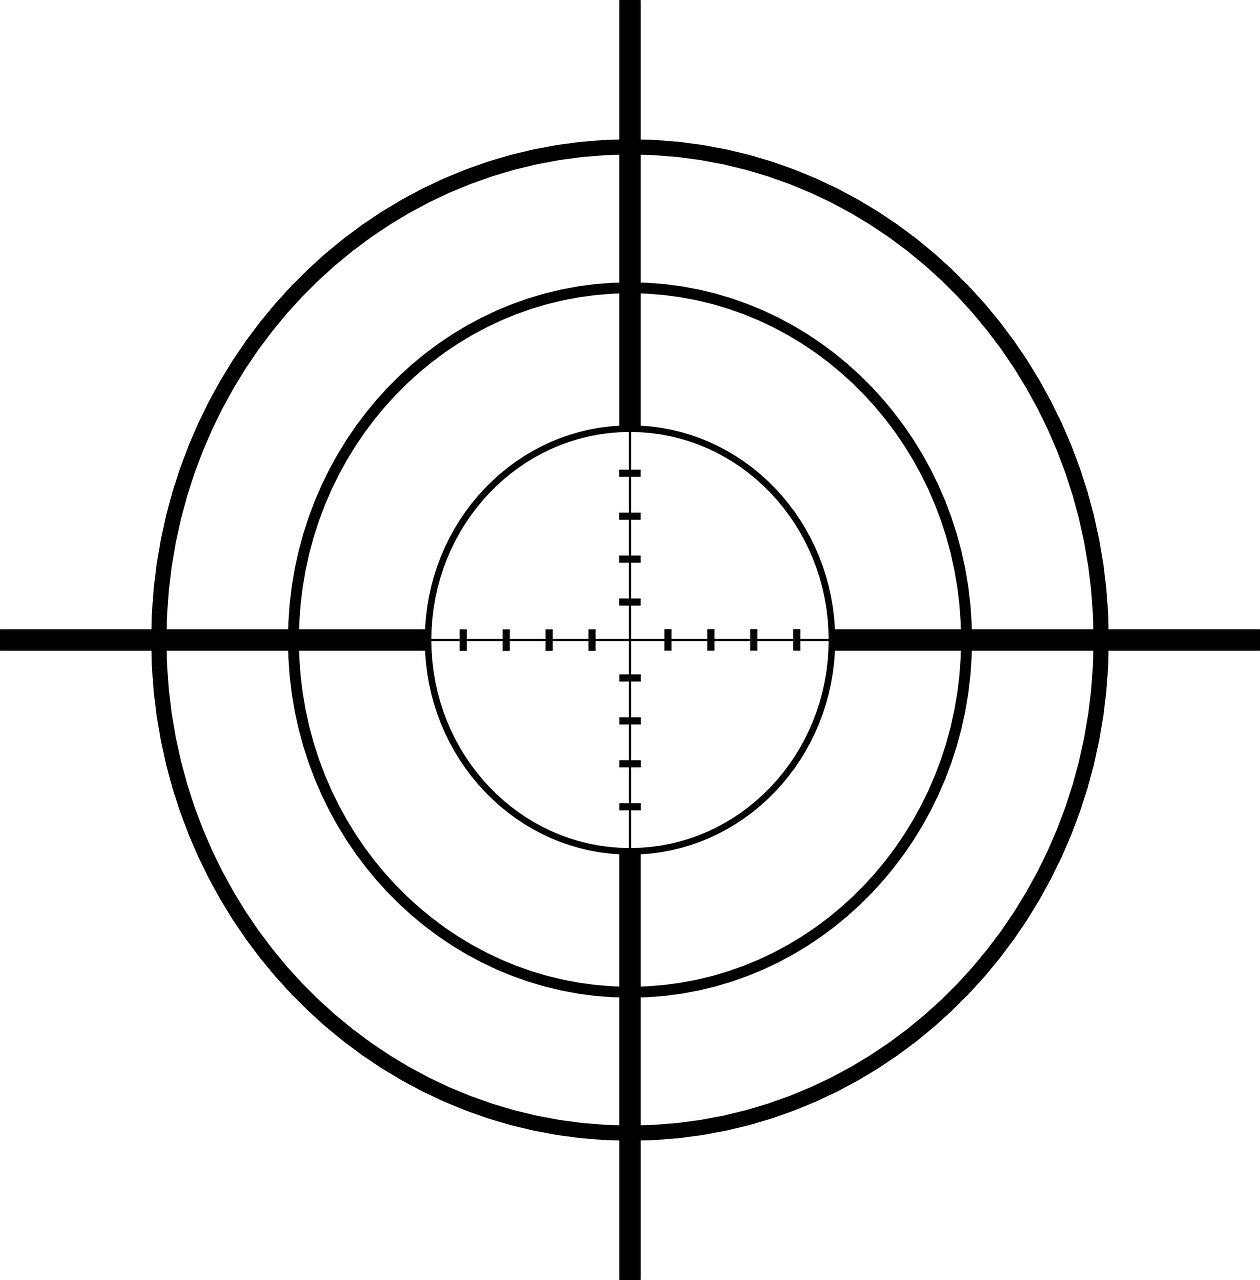 crosshair of rifle scope